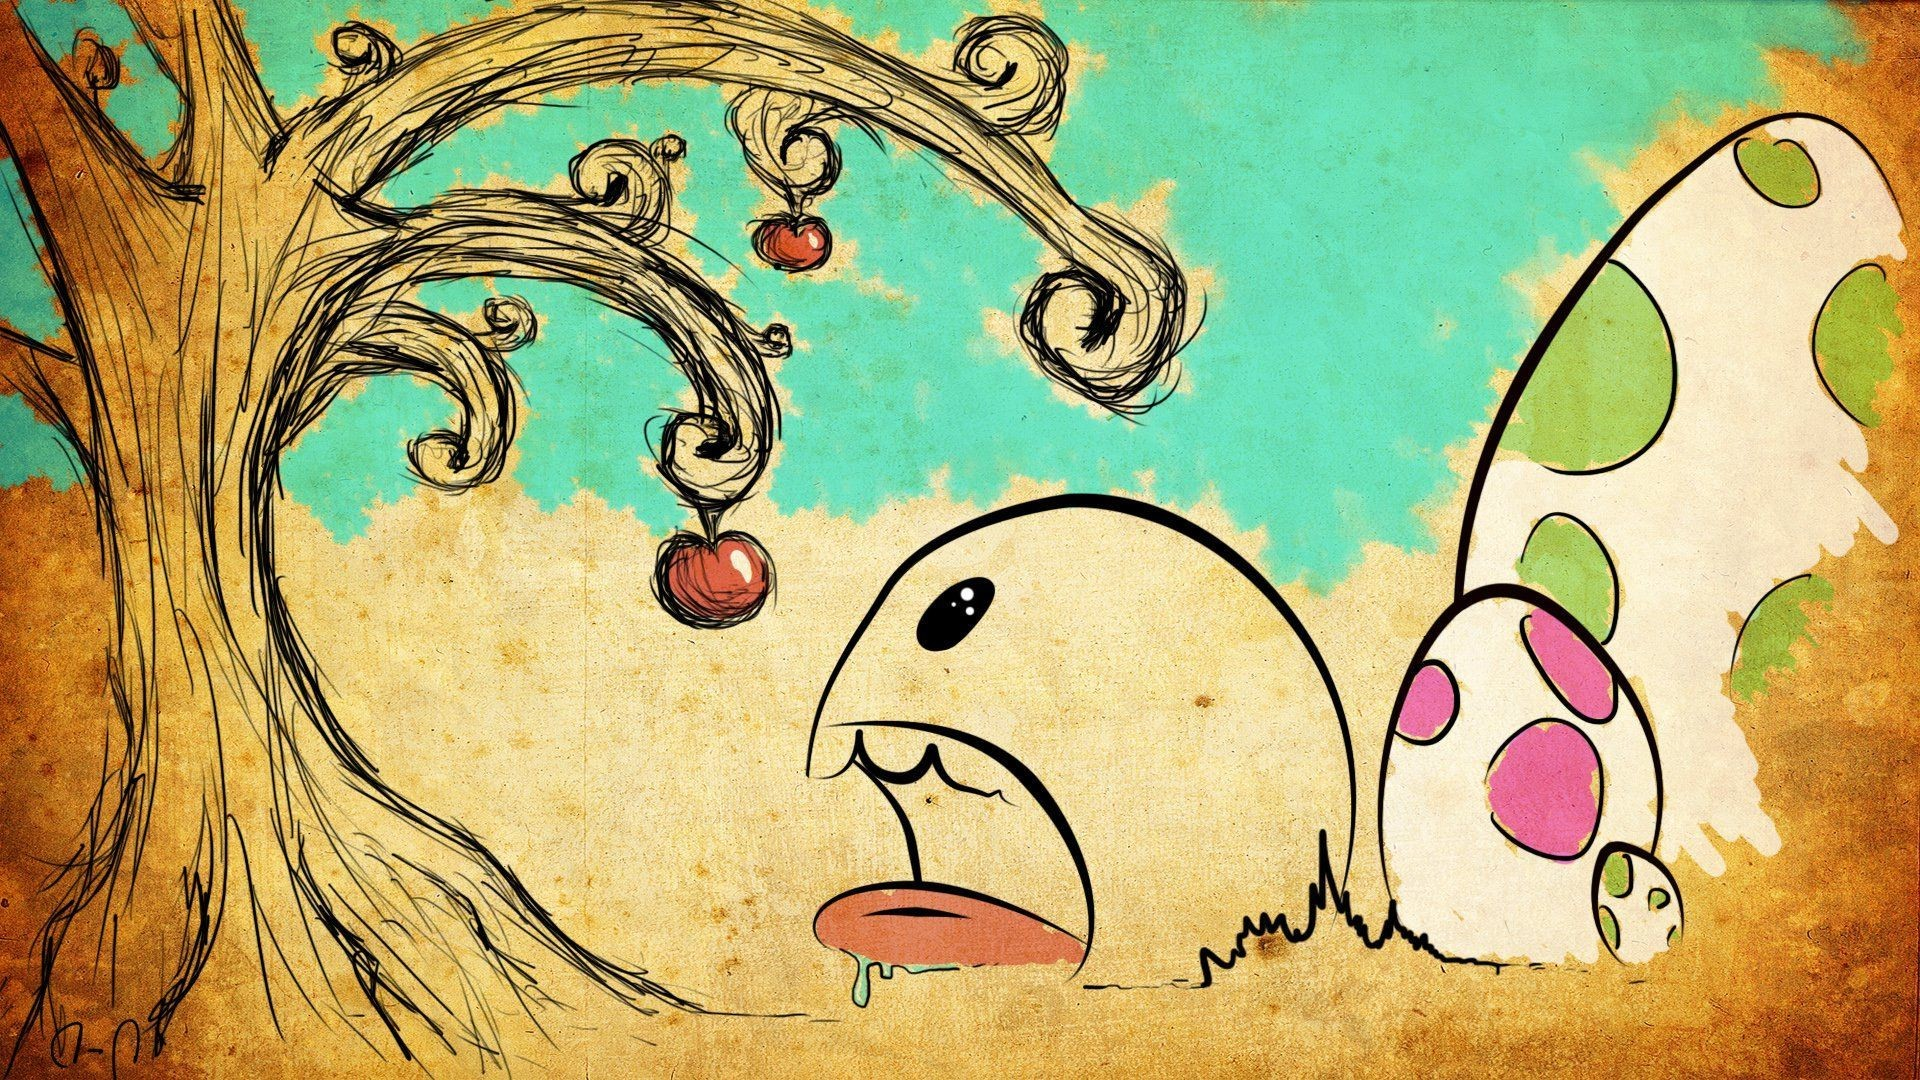 Res: 1920x1080, Cute monster trying to eat the apple HD Wallpaper